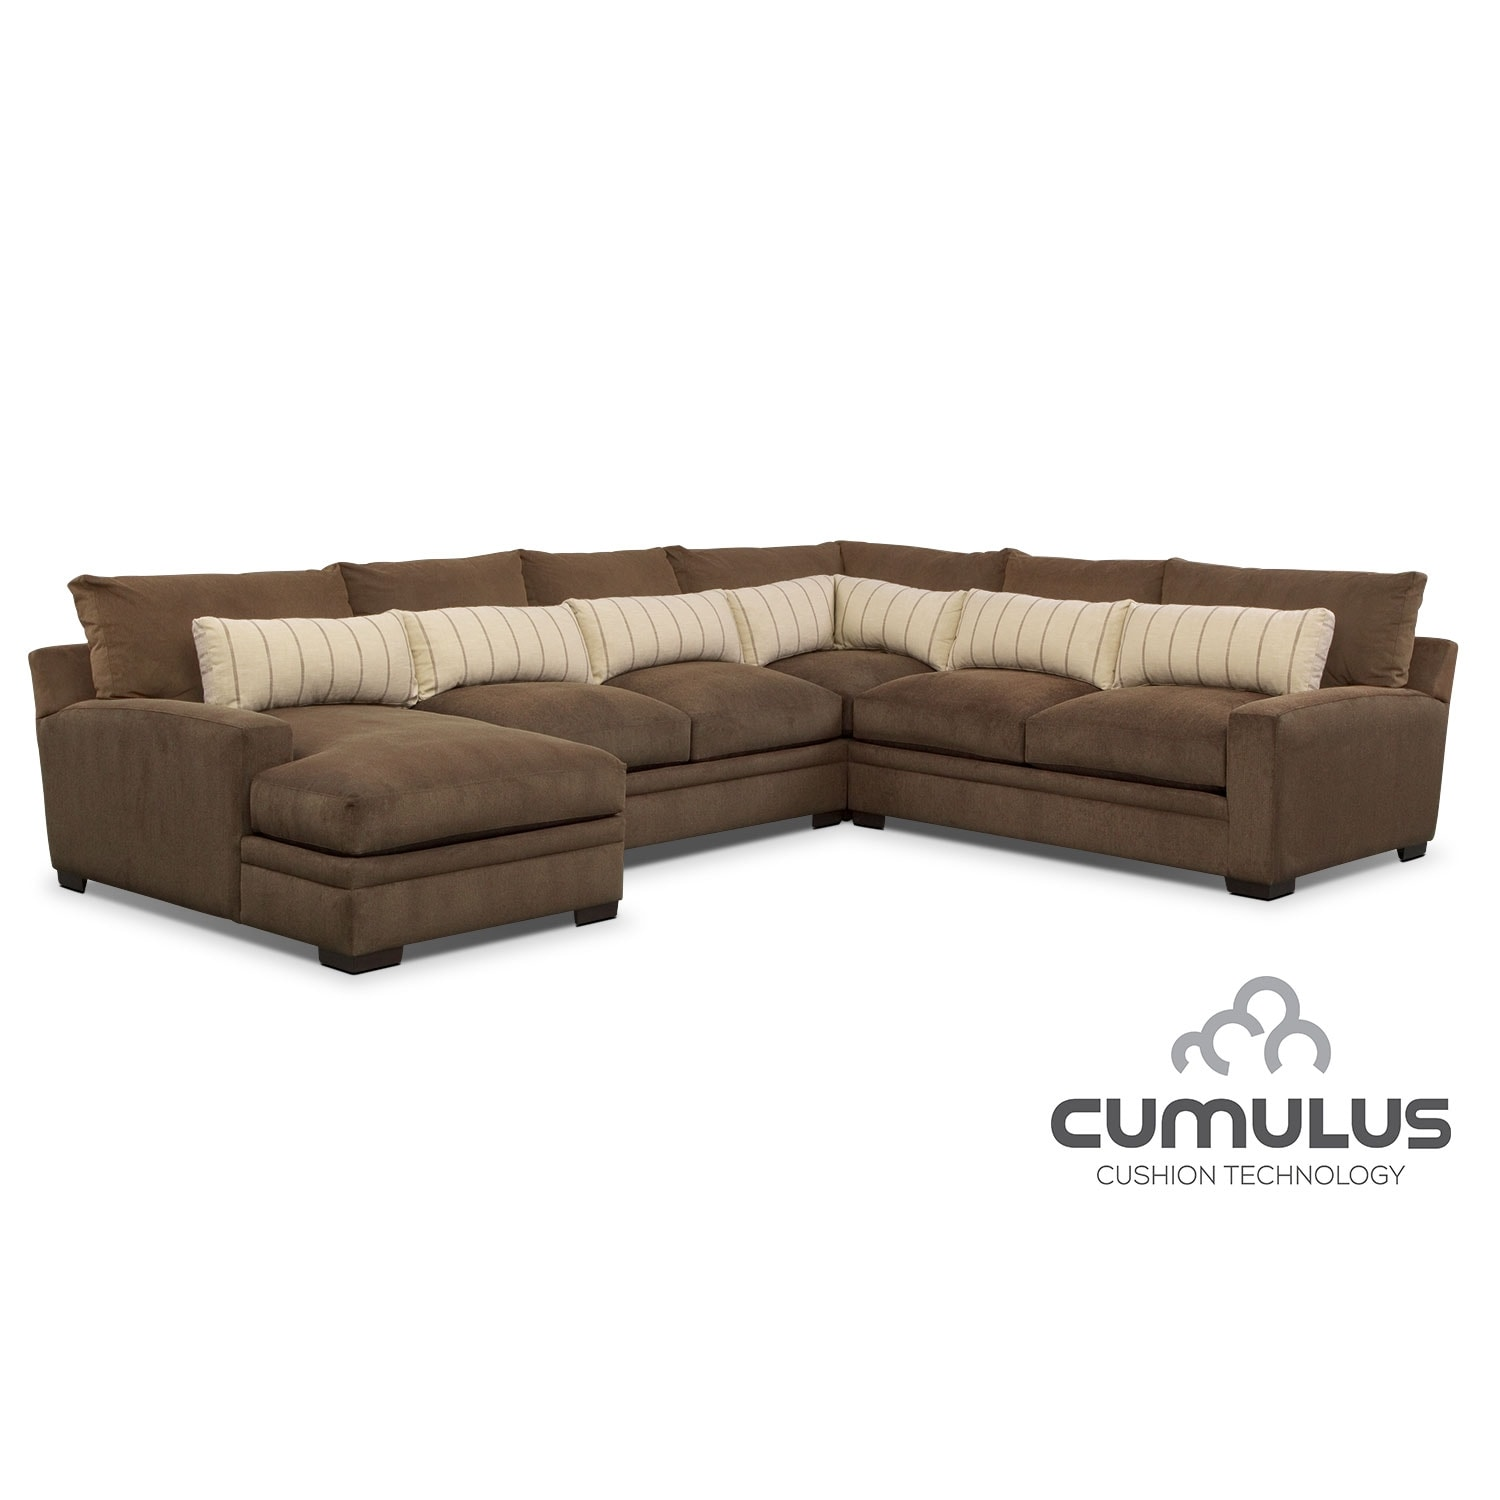 Living Room Furniture - Ventura 4 Pc. Sectional (Reverse)